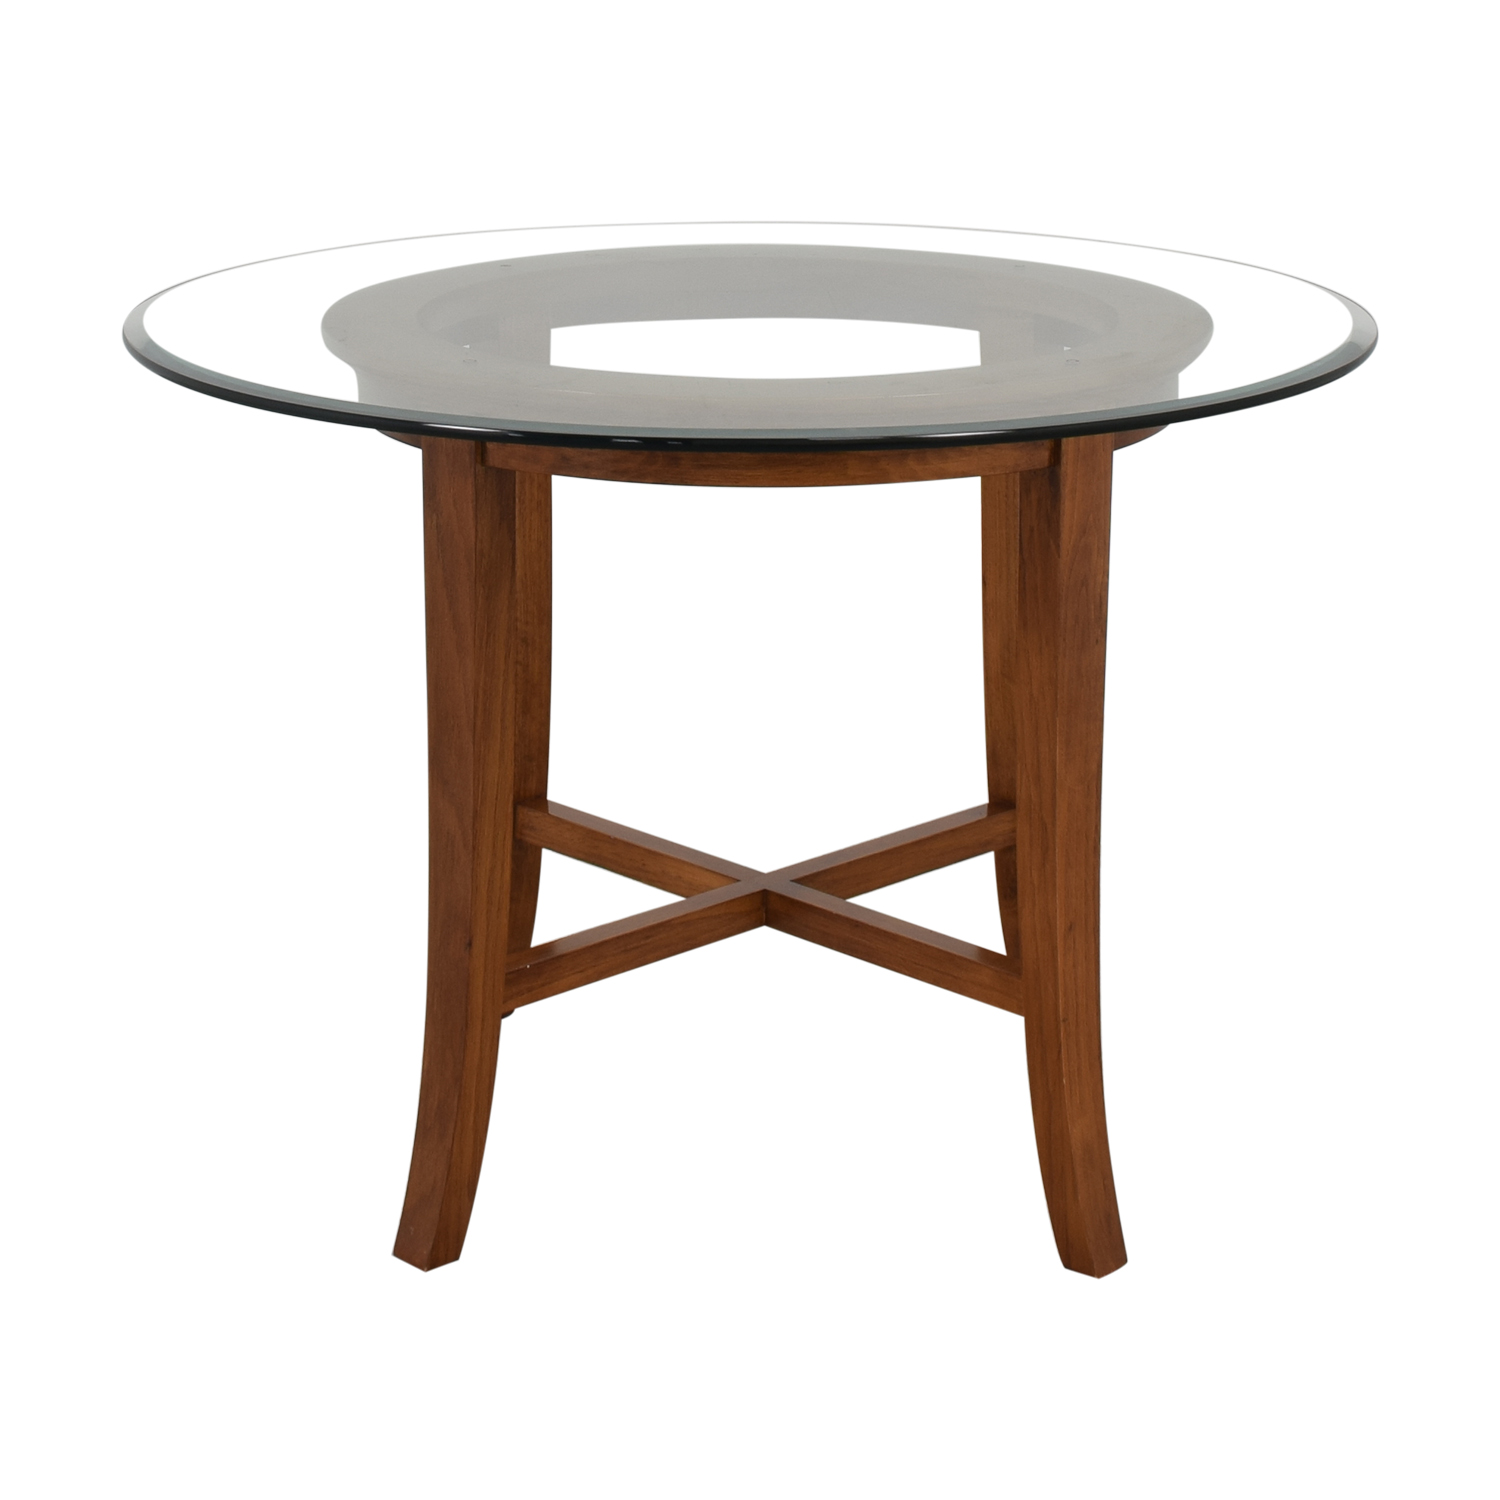 Crate & Barrel Crate & Barrel Halo Dining Table pa